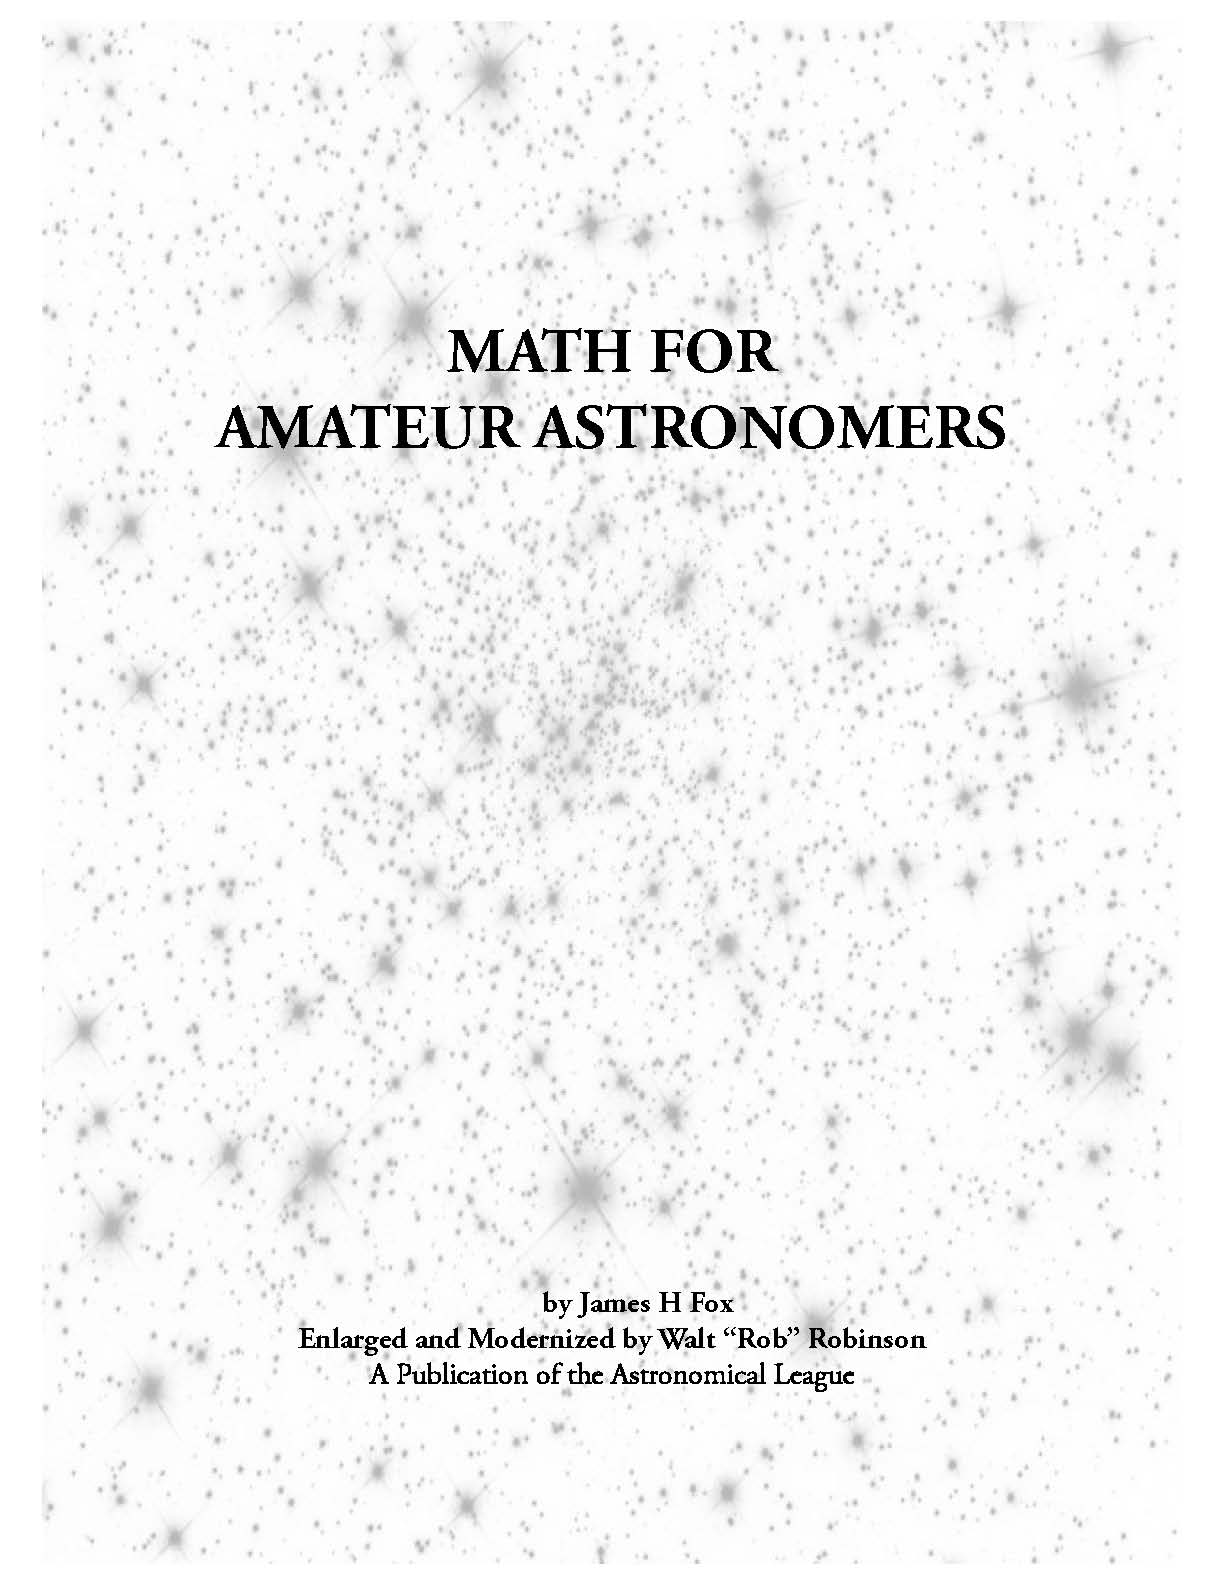 Math for Amateur Astronomers